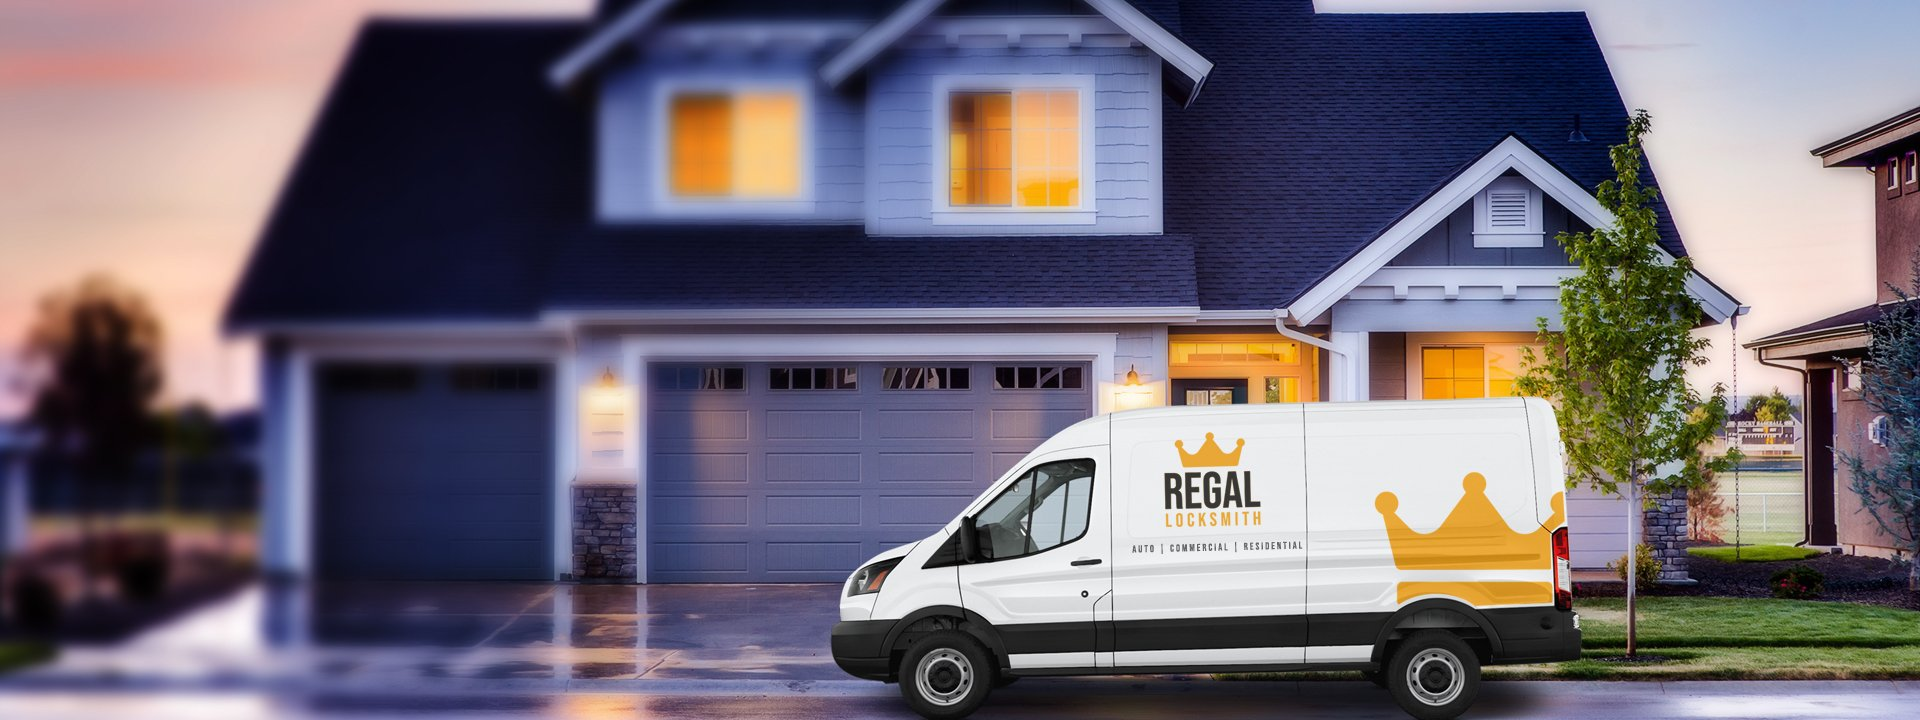 Regal Locksmith